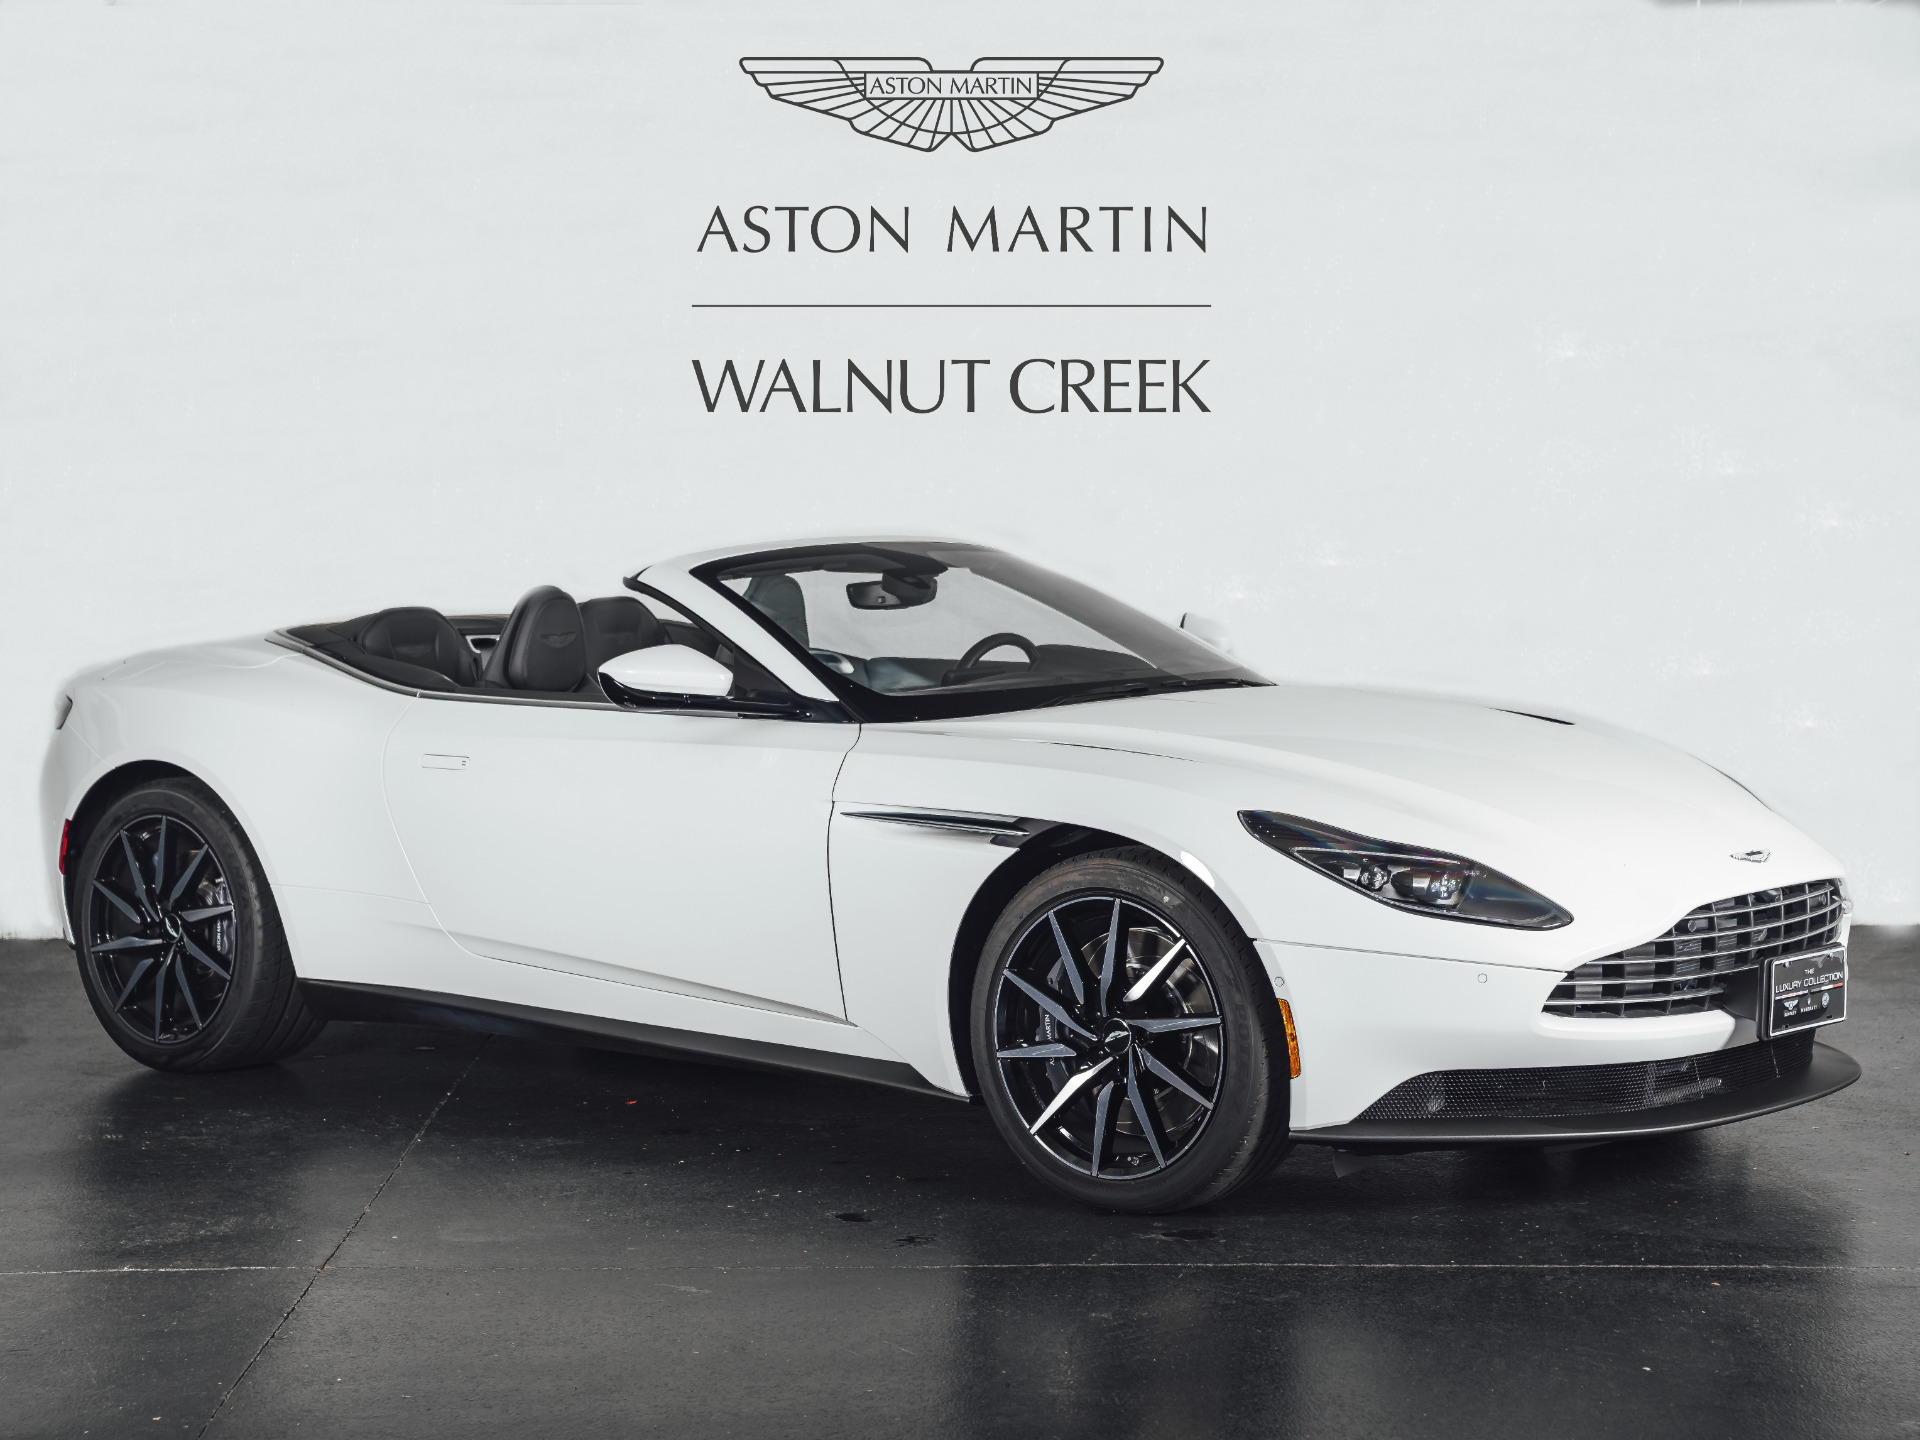 New 2020 Aston Martin Db11 Volante For Sale 243 286 The Luxury Collection Walnut Creek Stock Aml023